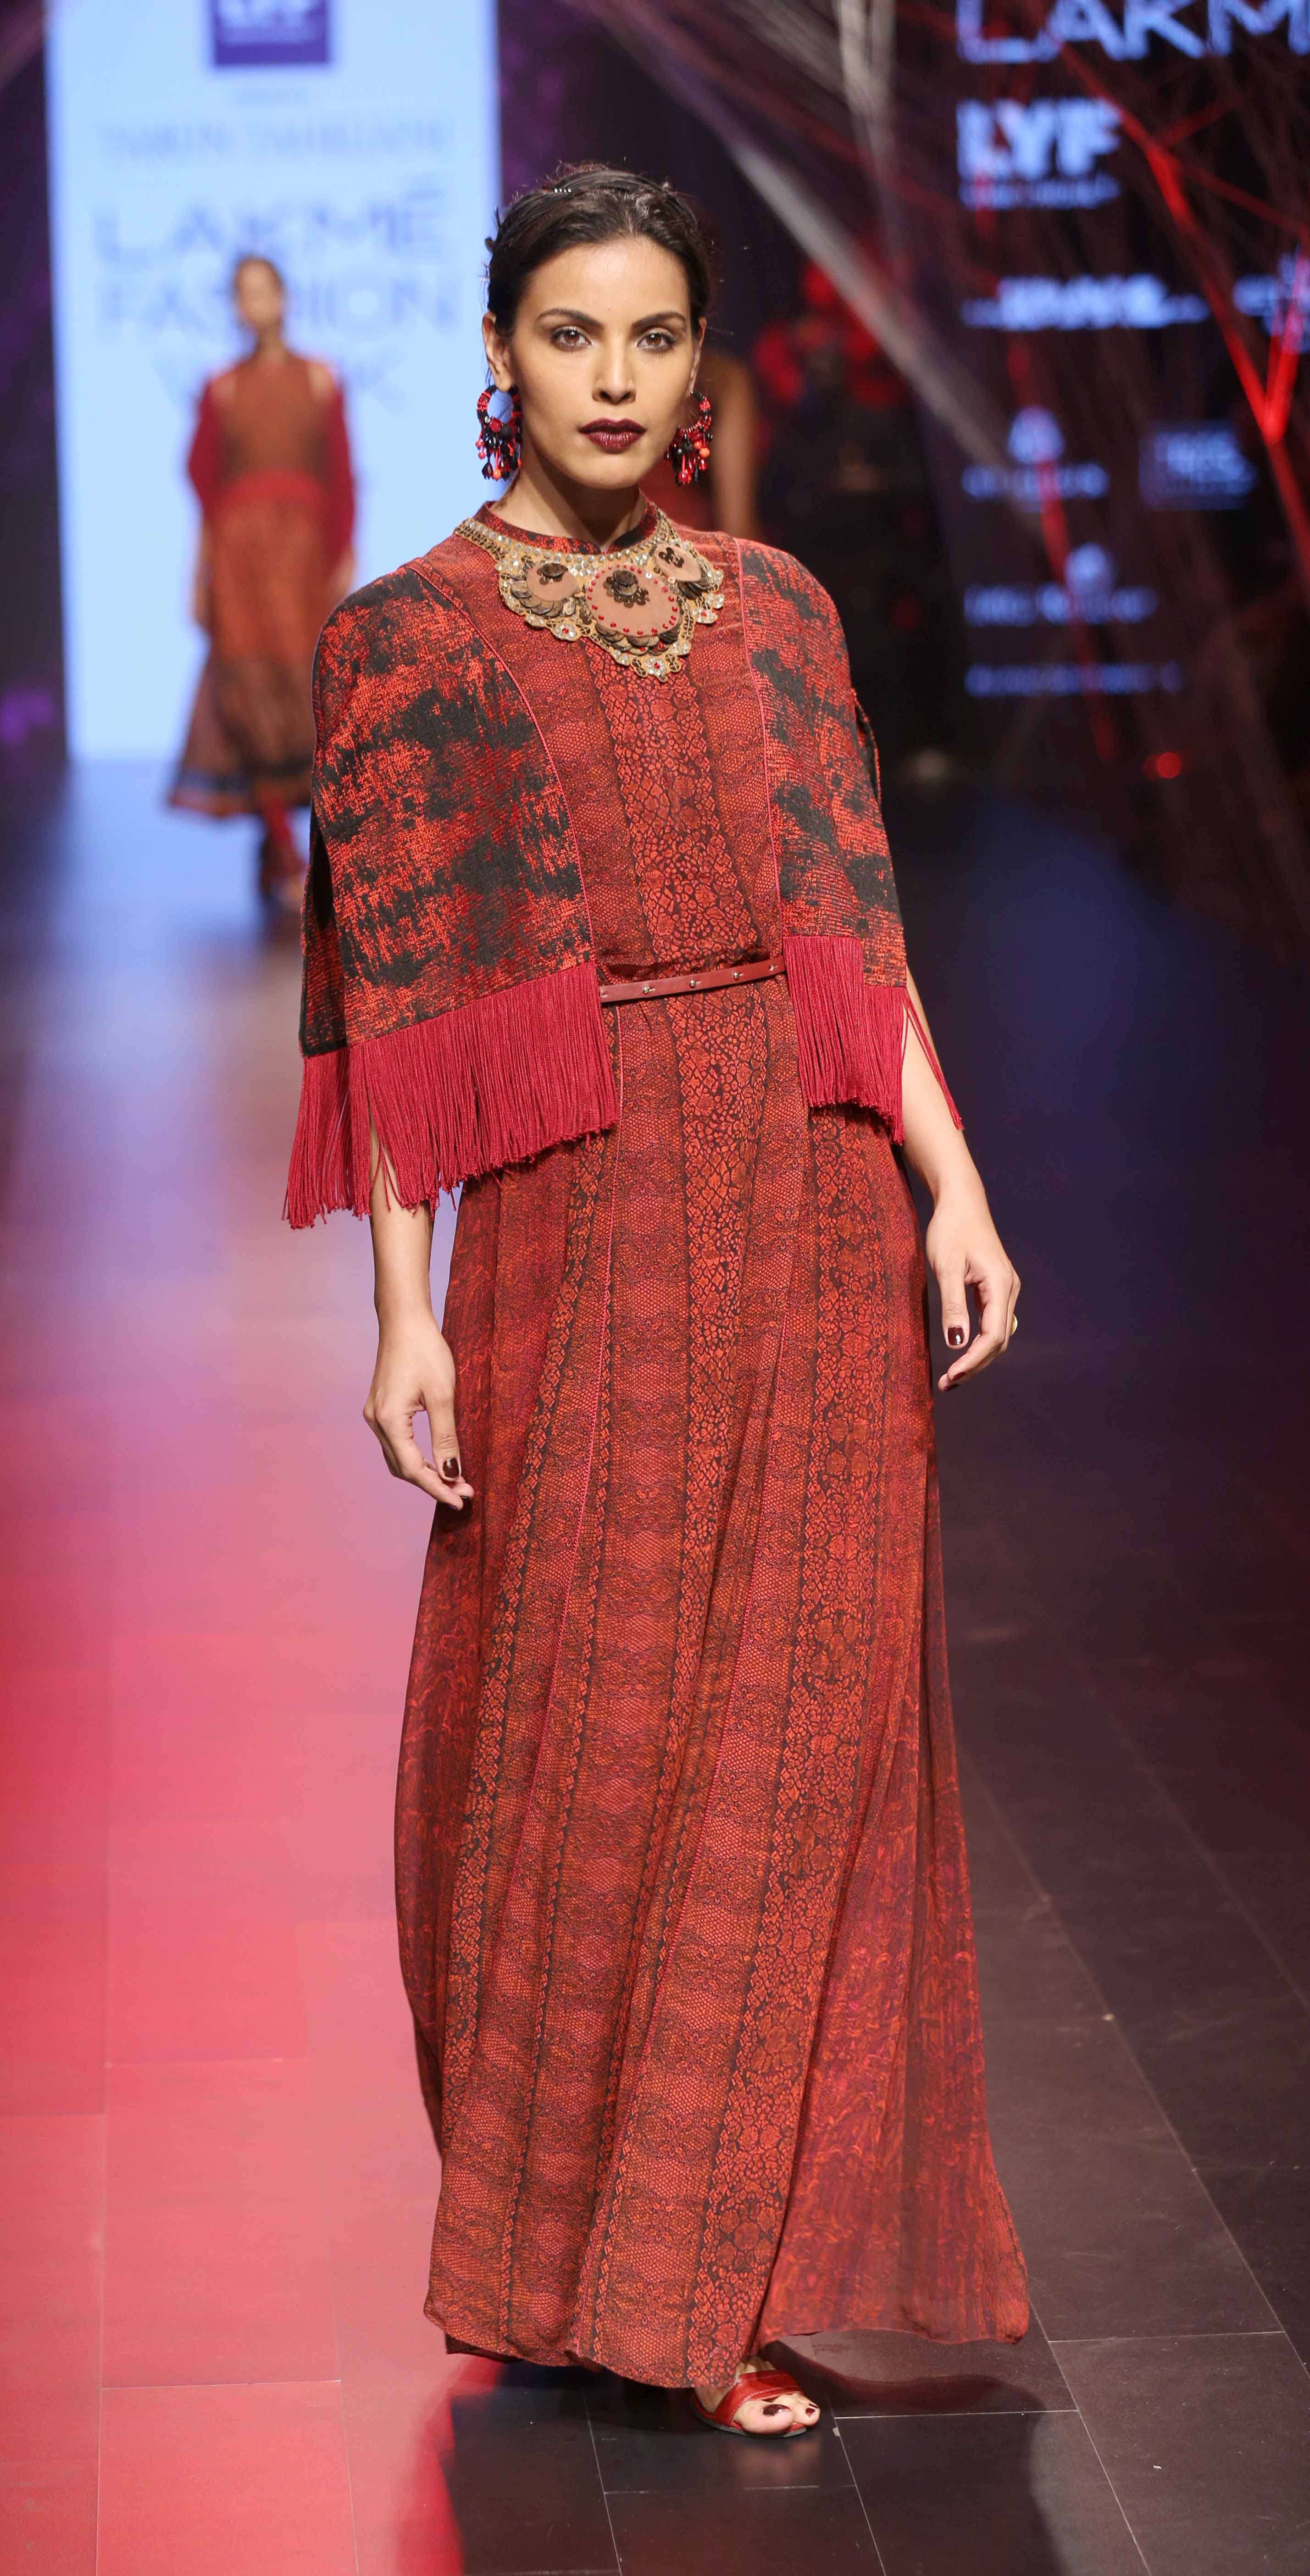 Tarun Tahiliani - Lakmé Fashion Week Winter-Festive 2016